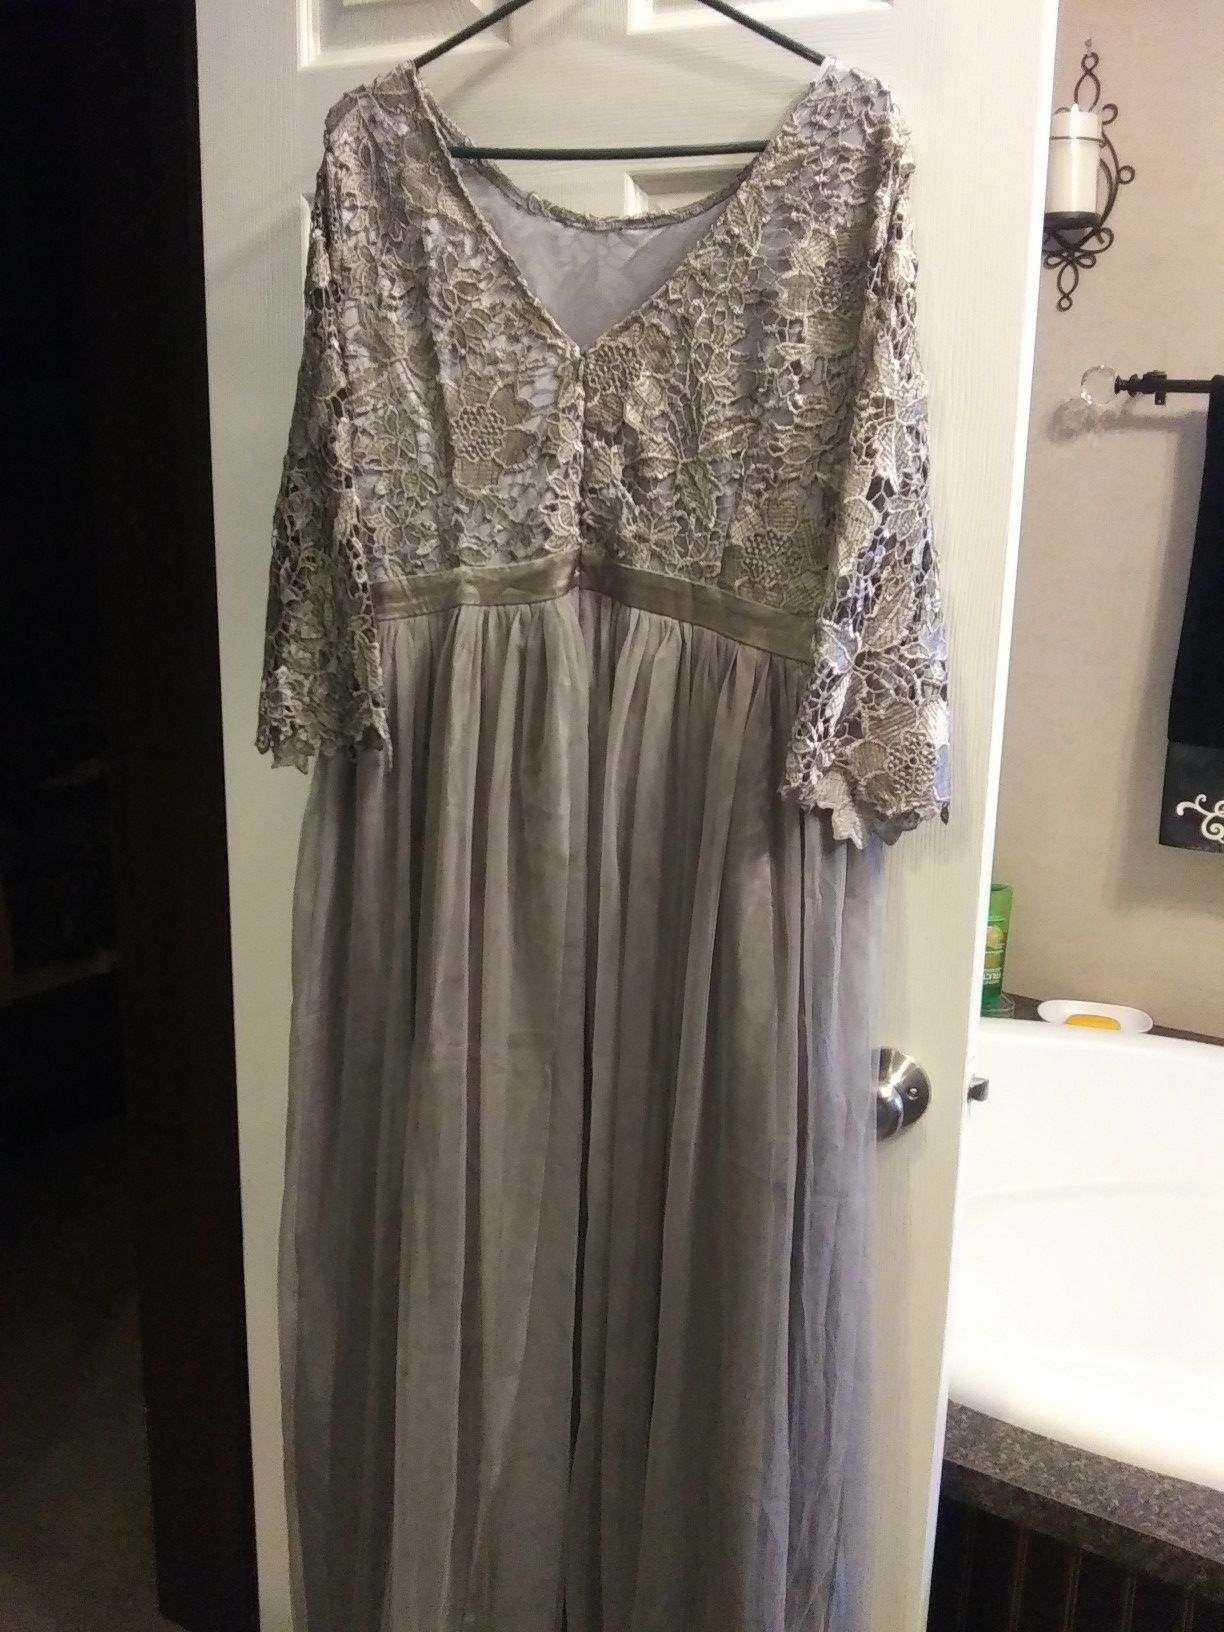 After five evening dress / party dress / mother of the bride dress